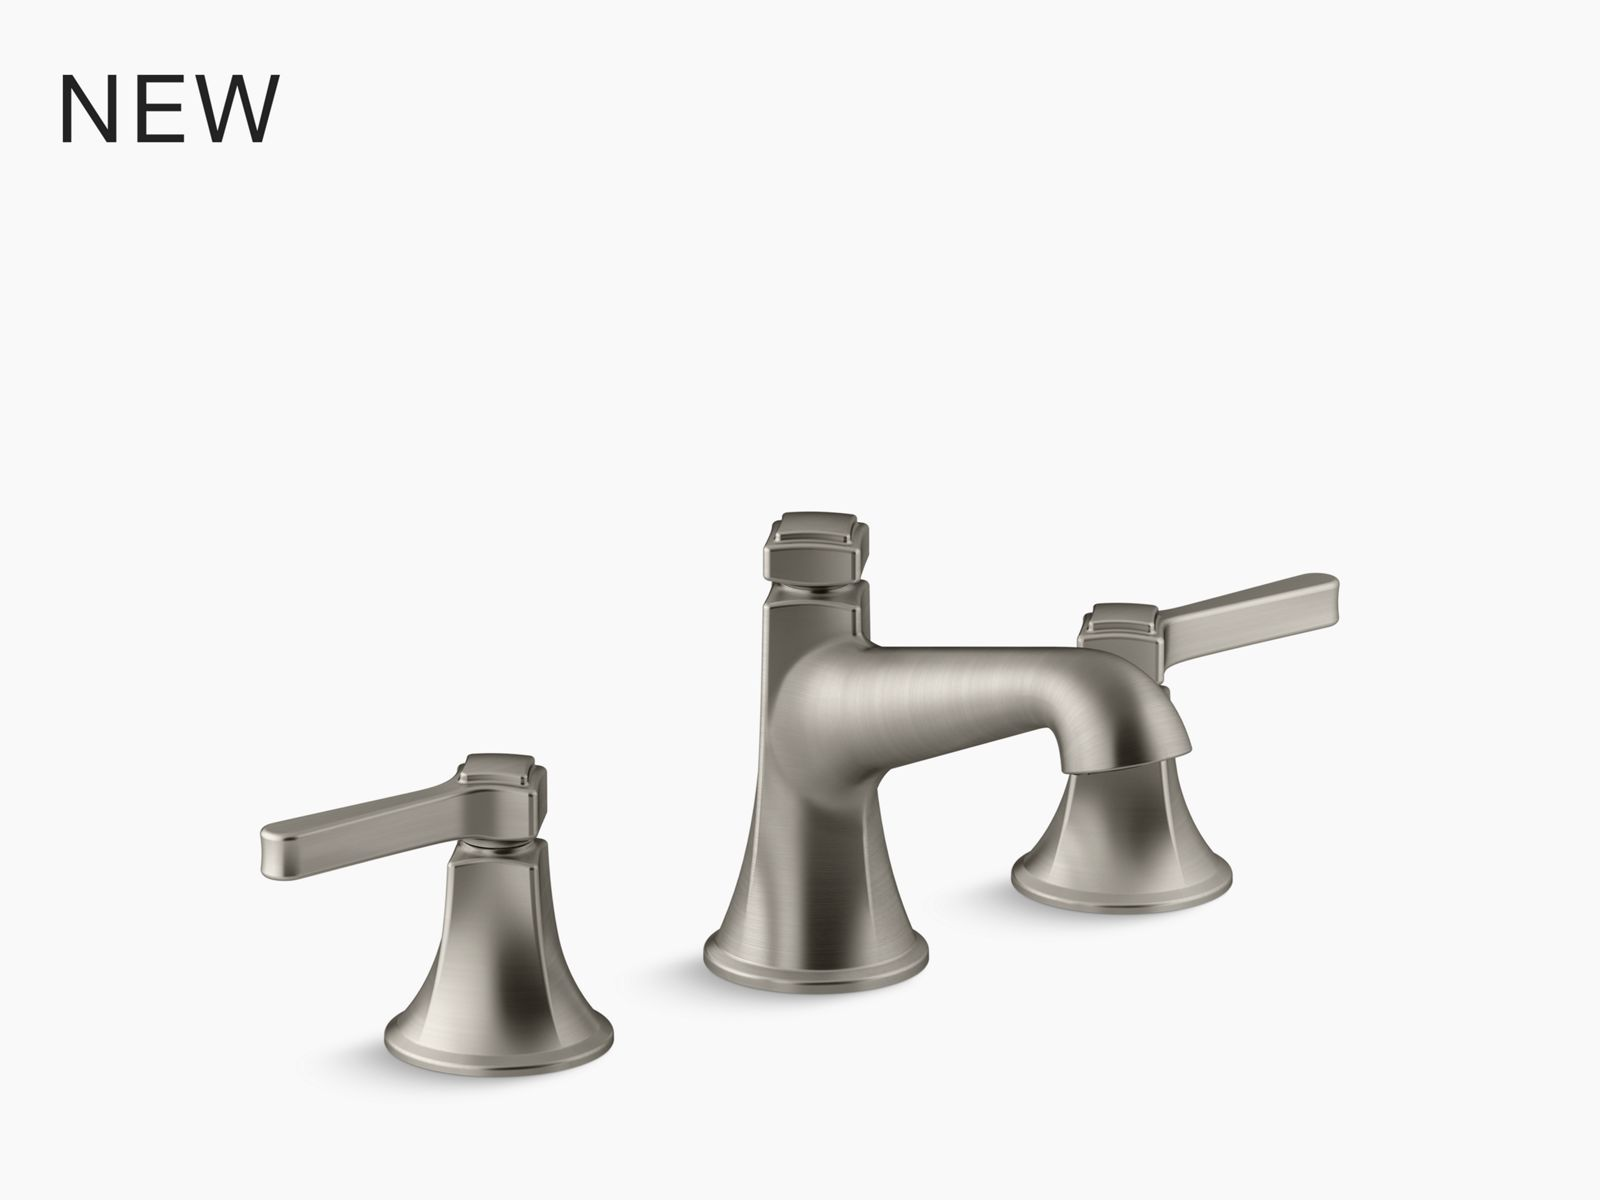 forte widespread bathroom sink faucet with sculpted lever handles